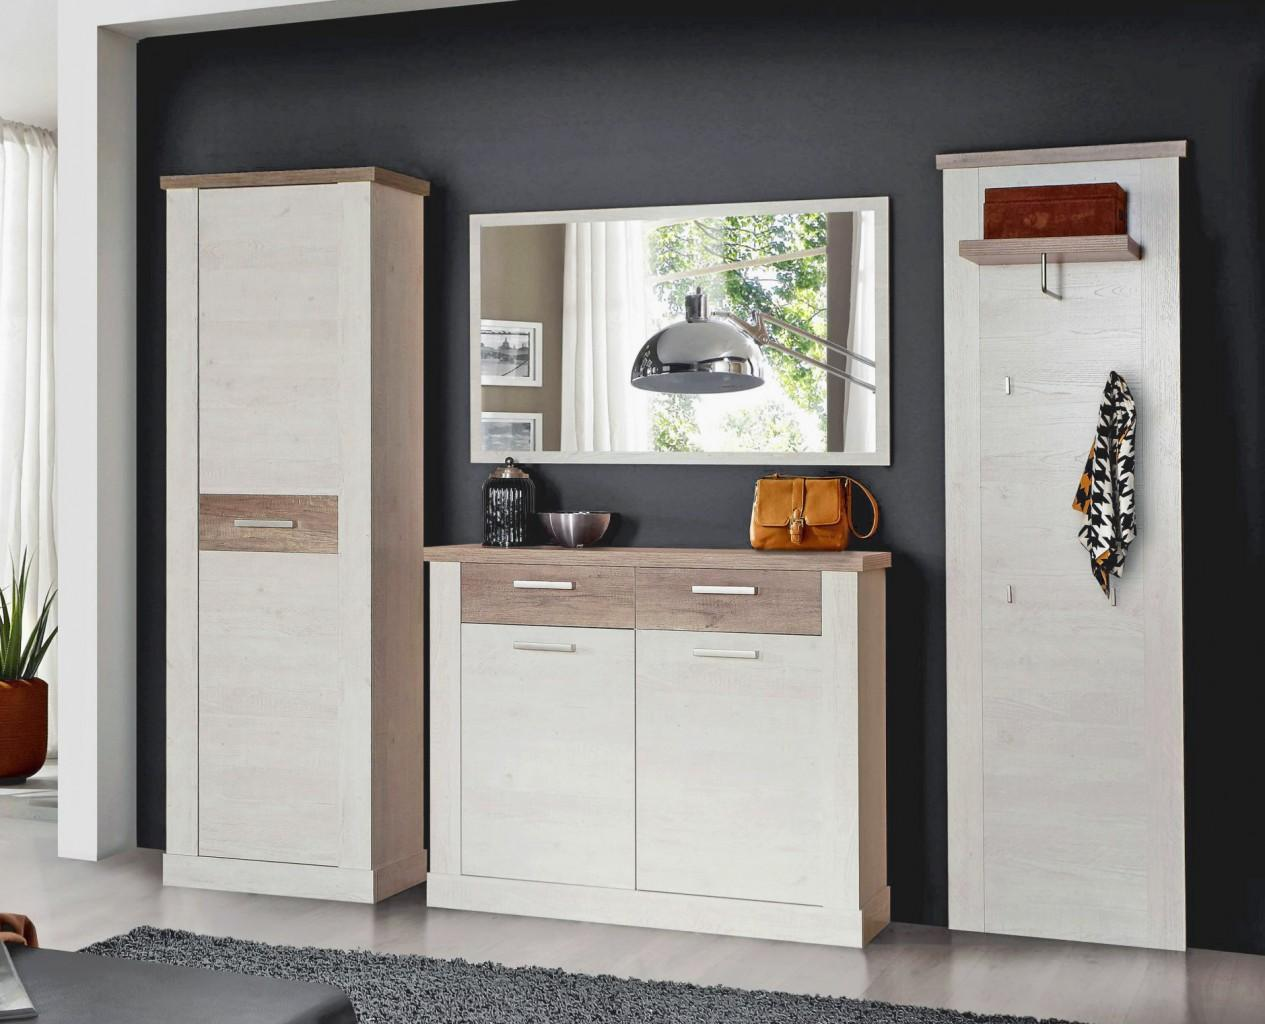 garderobe duro 4 tlg komplett set pinie wei absetzungen. Black Bedroom Furniture Sets. Home Design Ideas